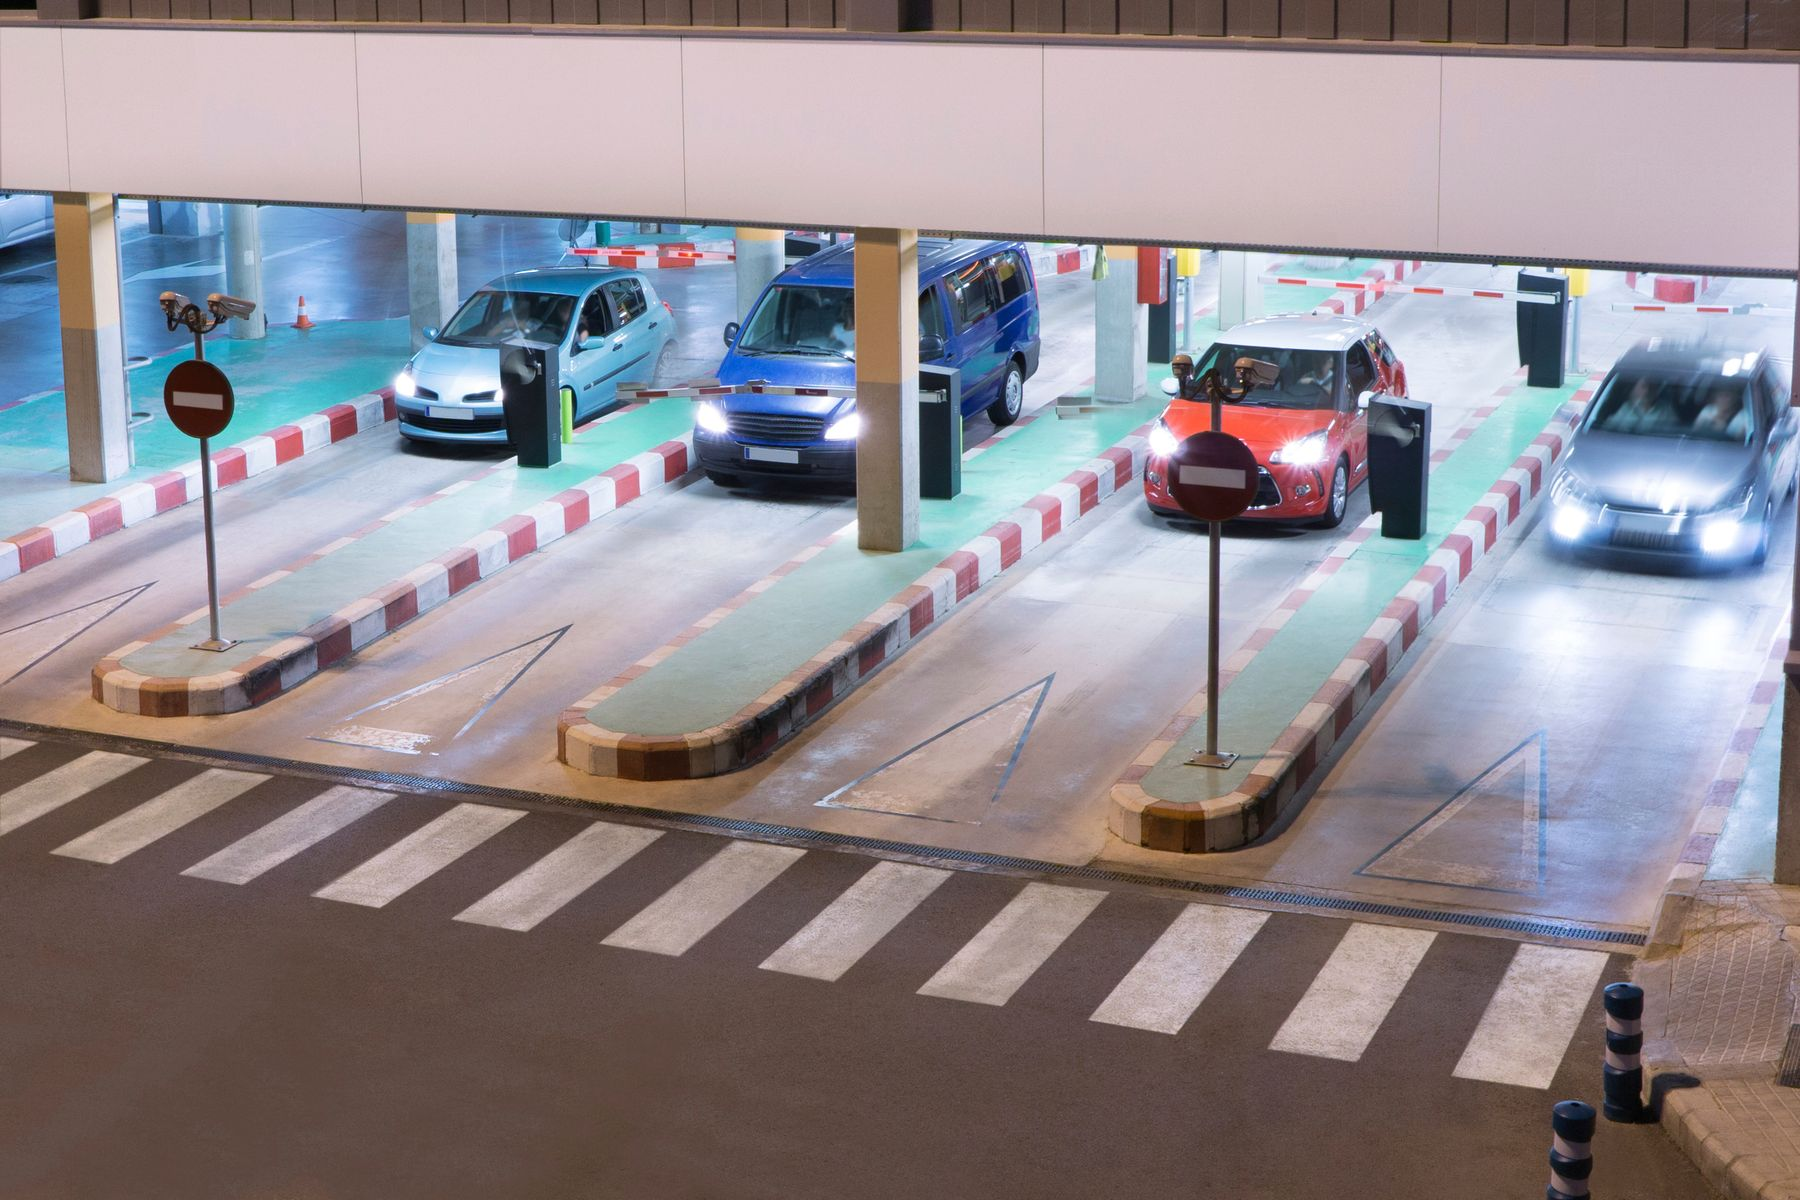 Melbourne airport parking makes it easy to start your trip